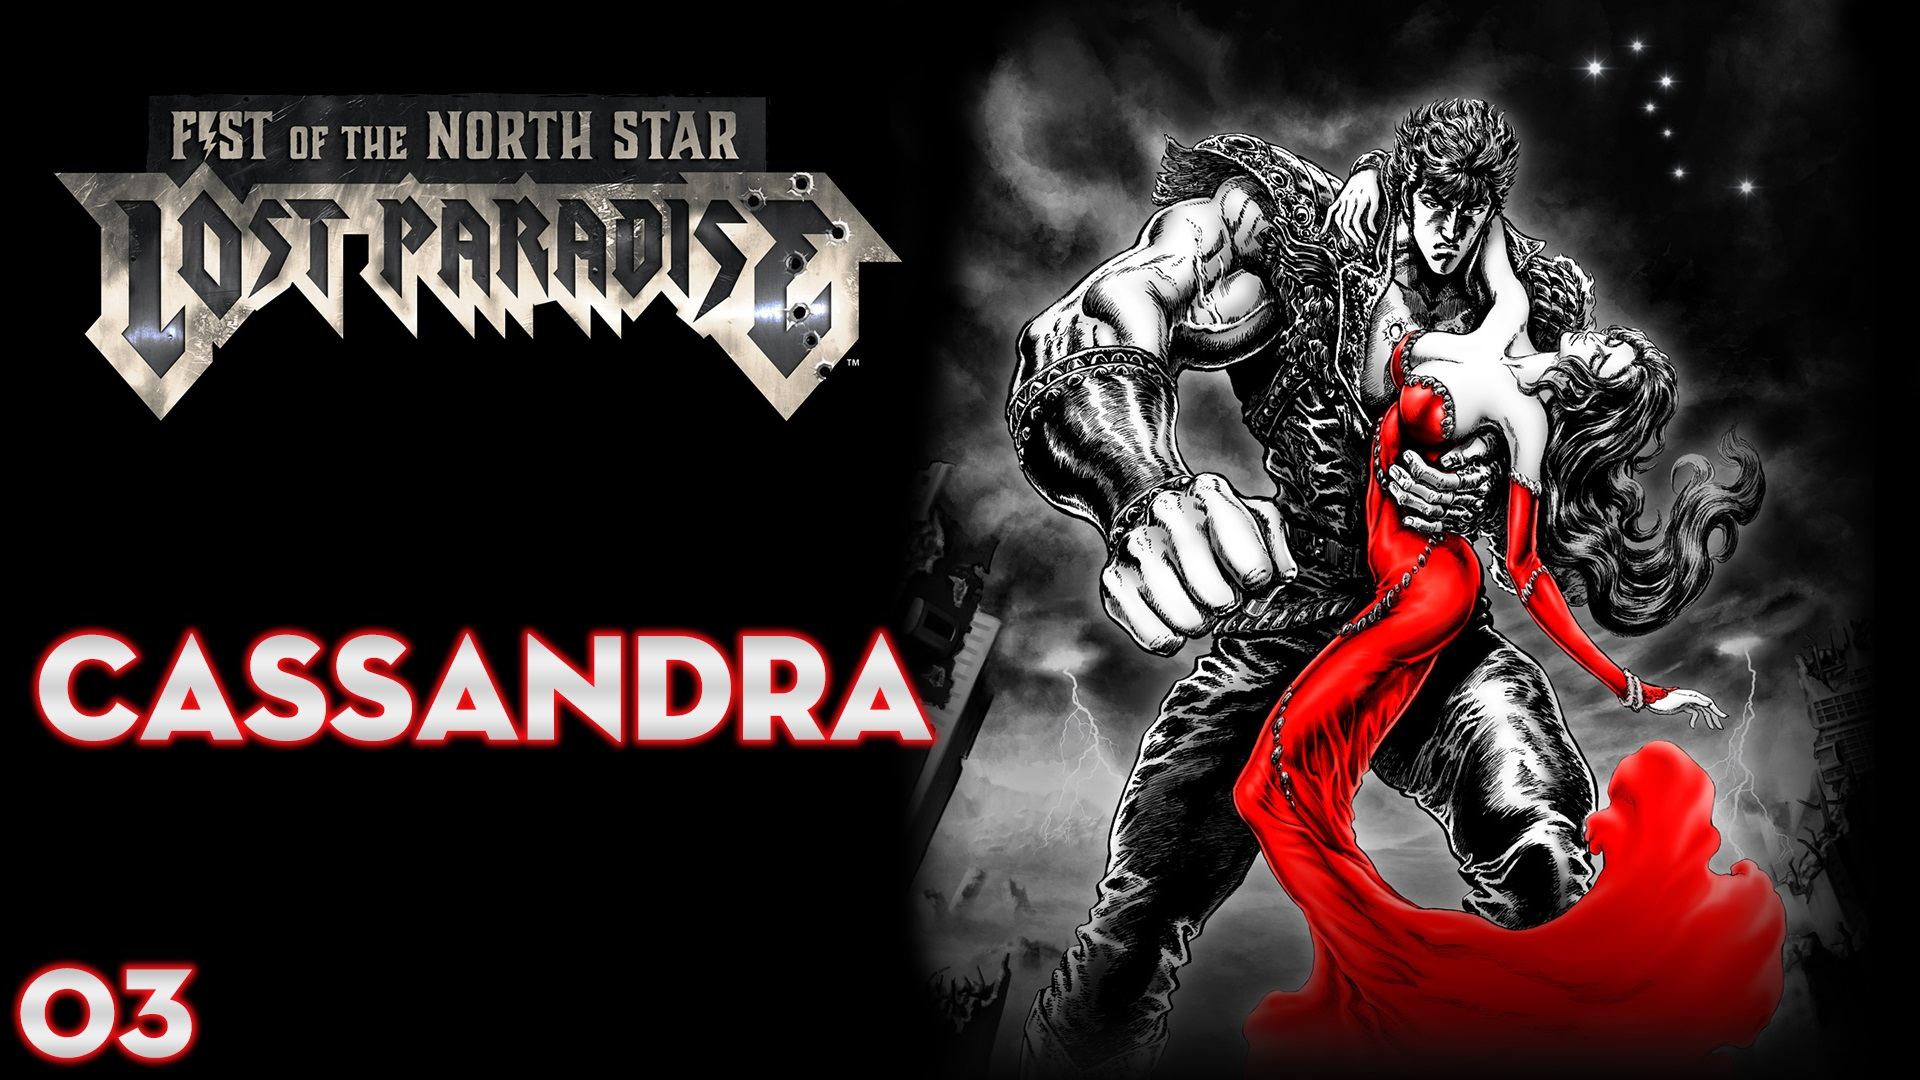 Serie Fist of the North Star: Lost Paradise #3 – Cassandra